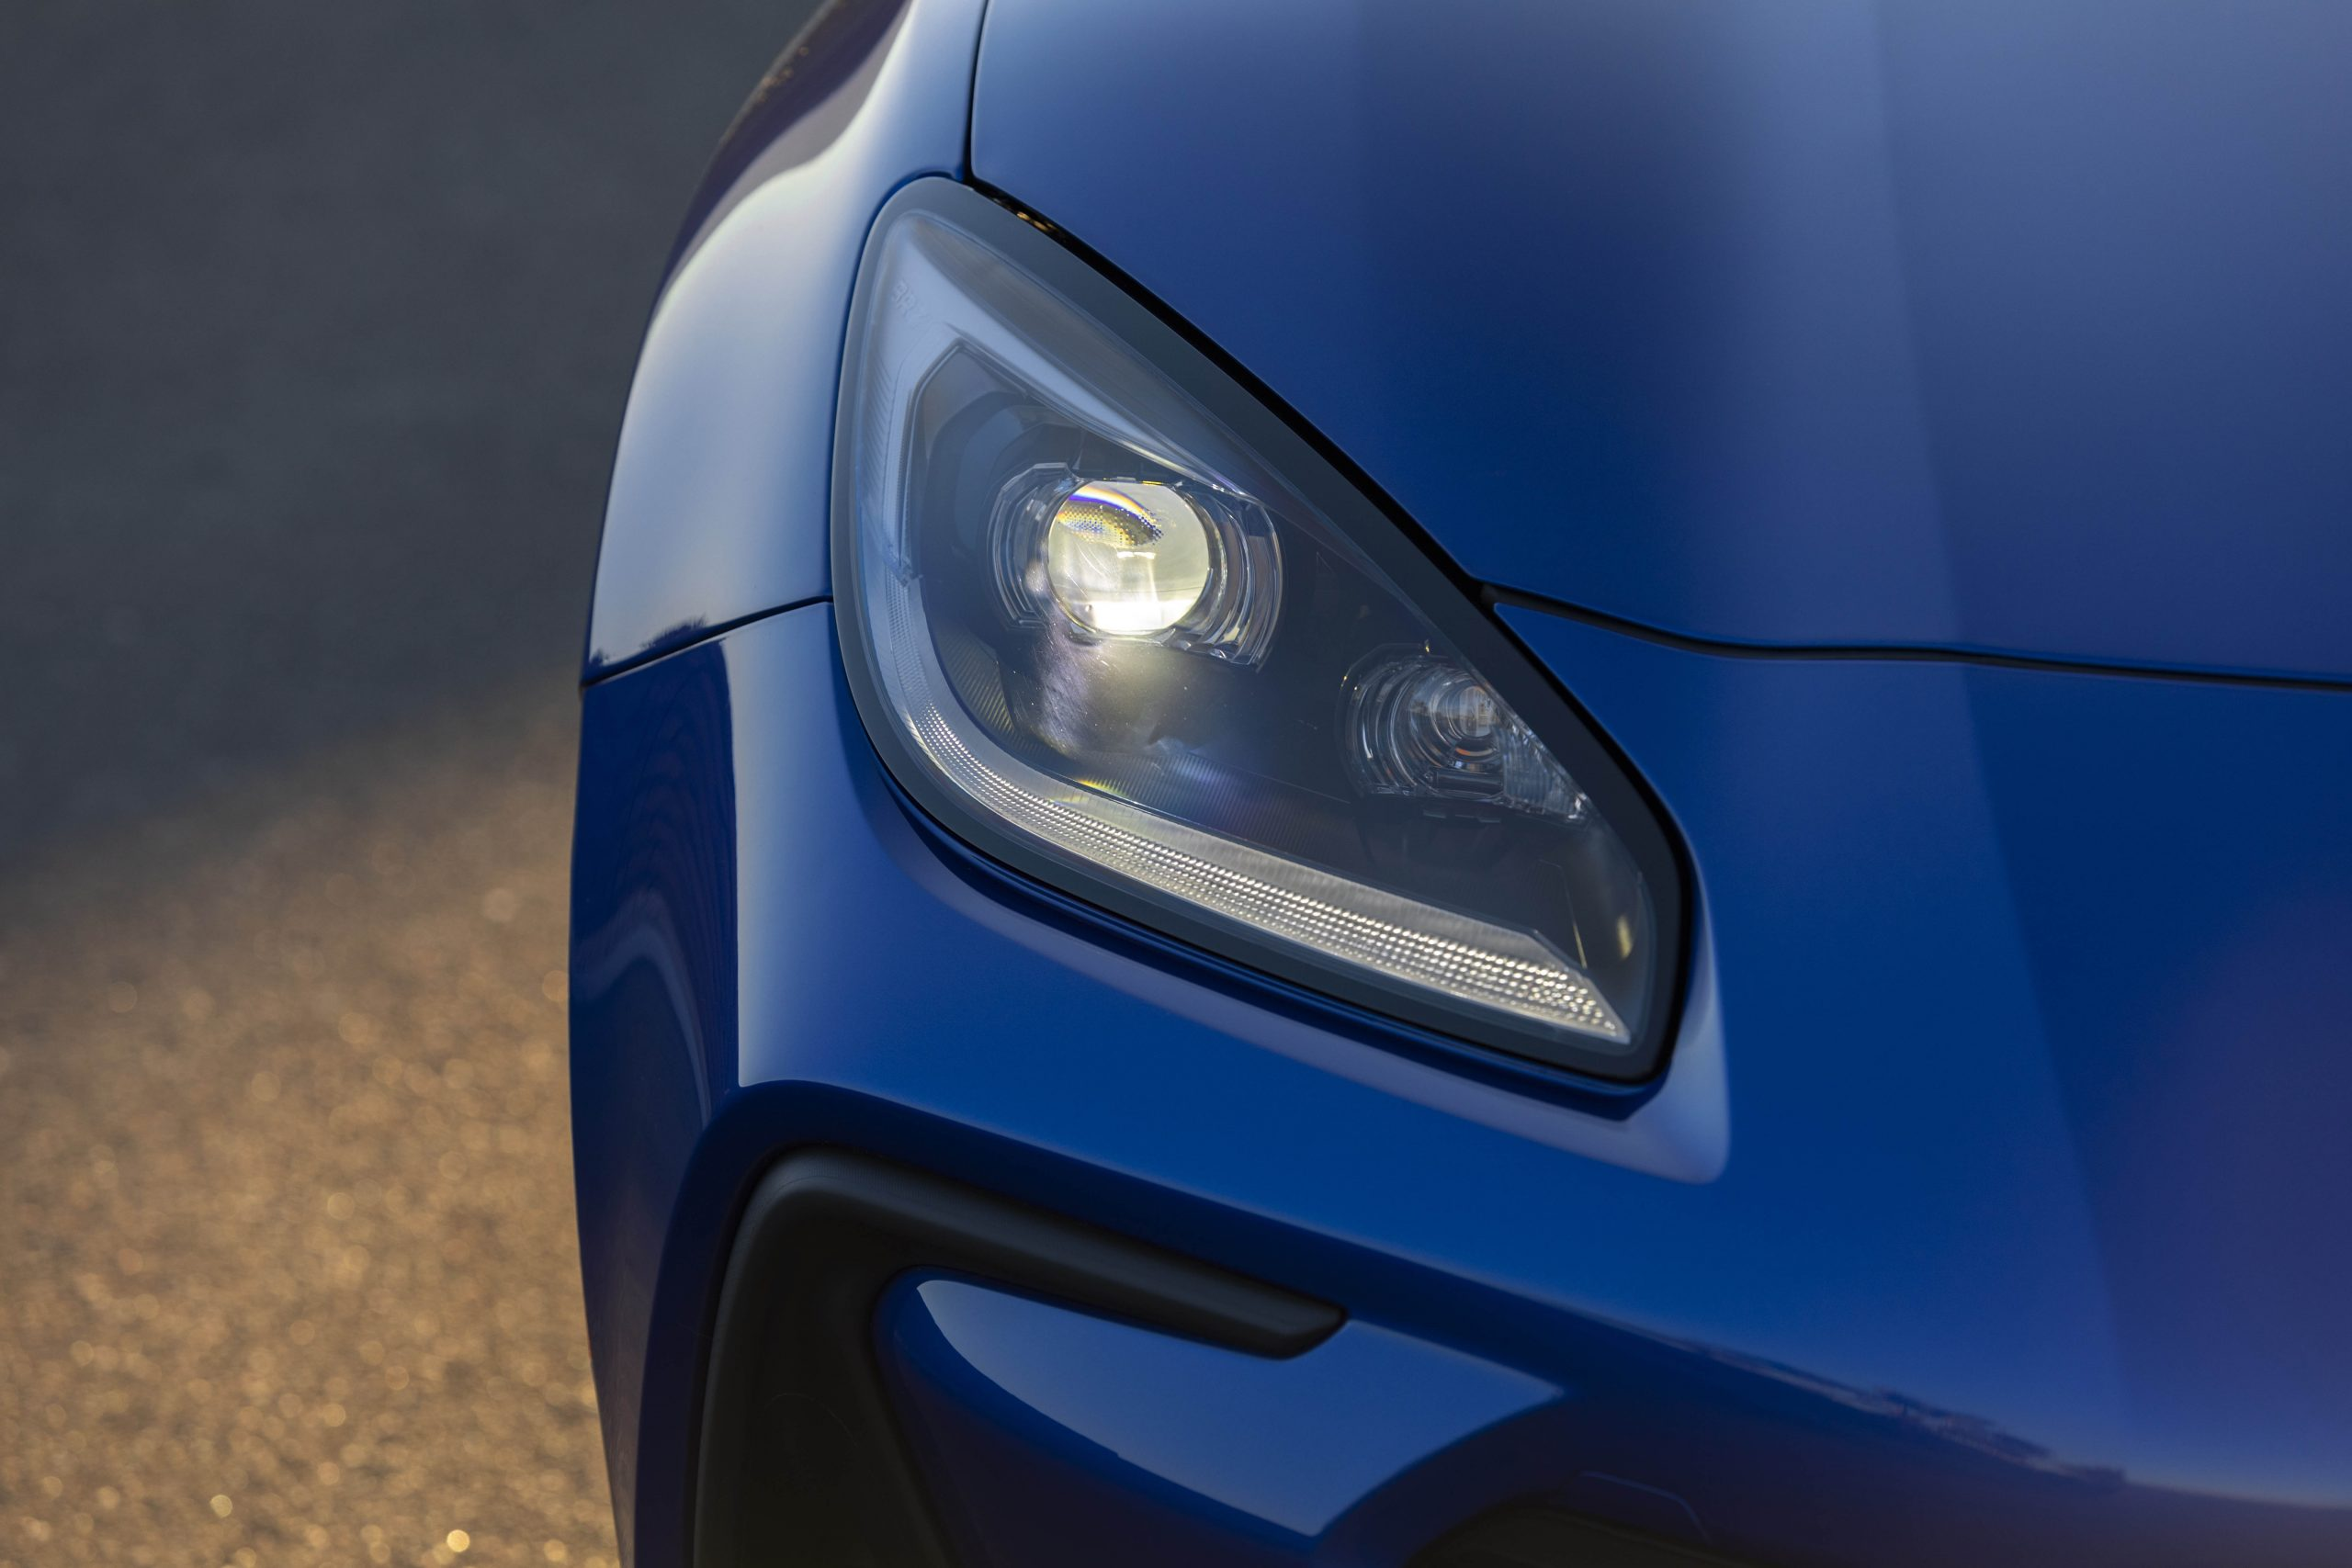 New 2022 Subaru BRZ headlight